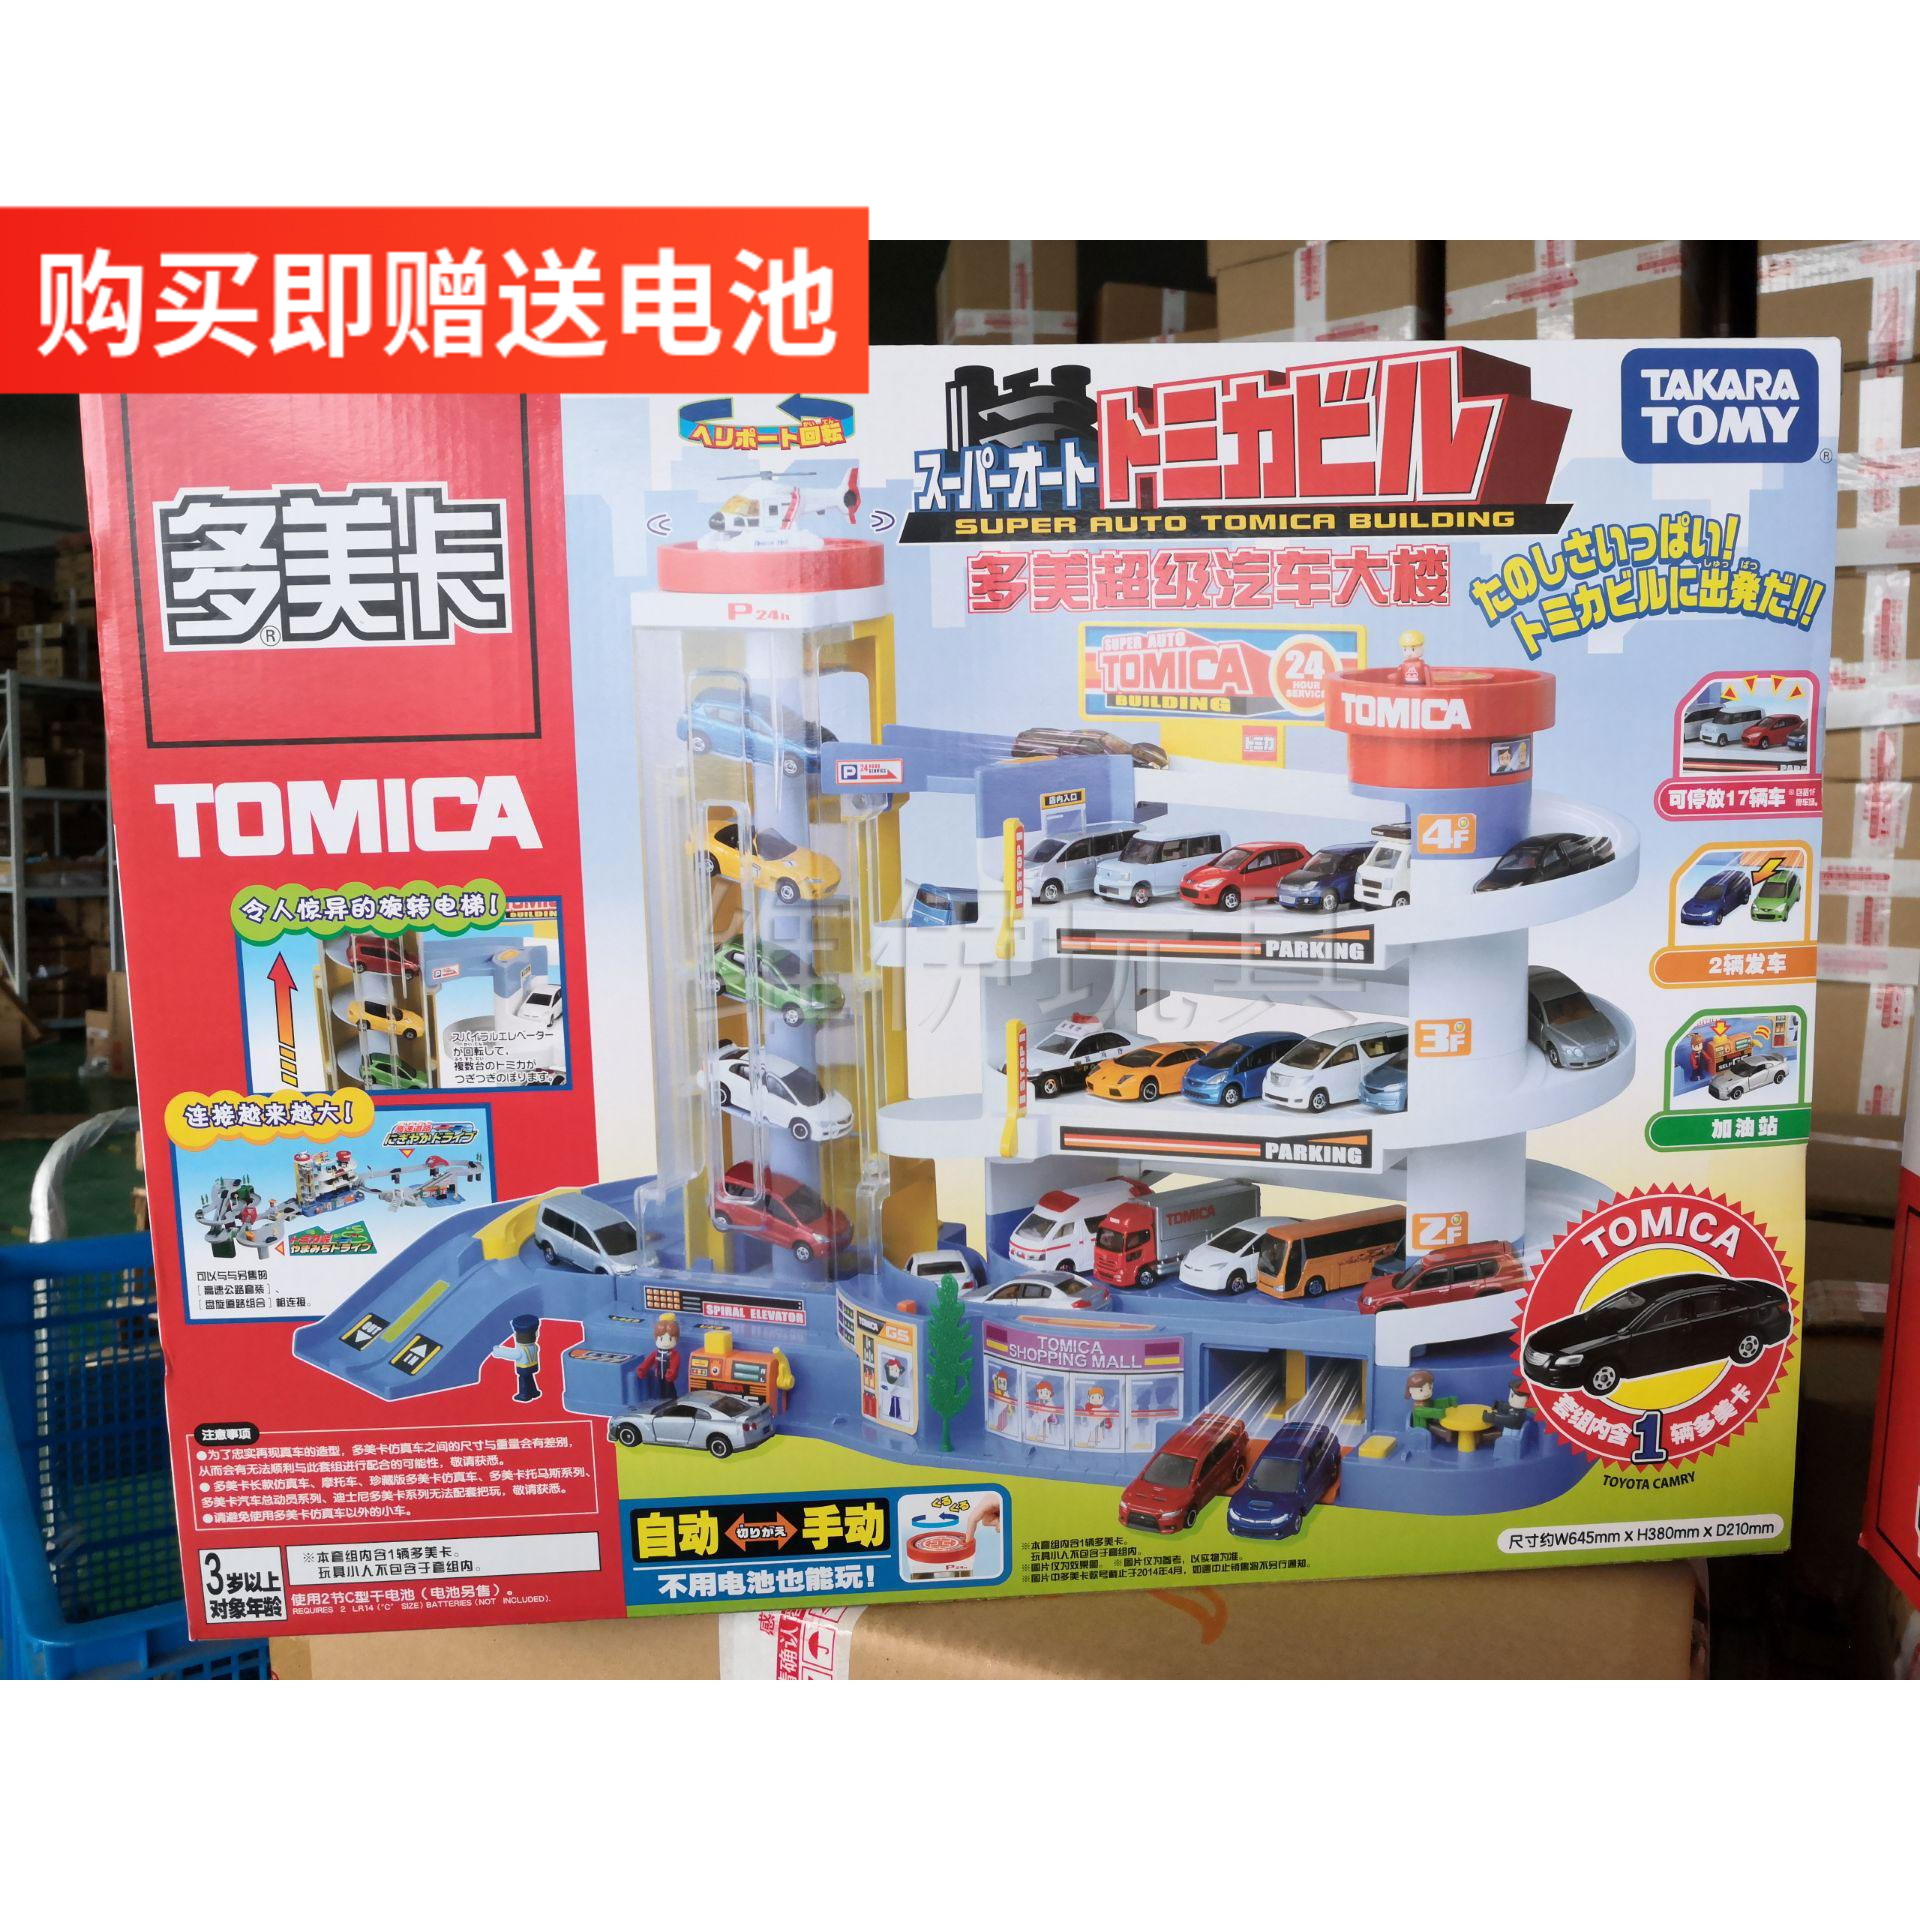 Domica Supercars Building Electric Rail Parking Alloy Car Kids And Boys Toy Gift 430865